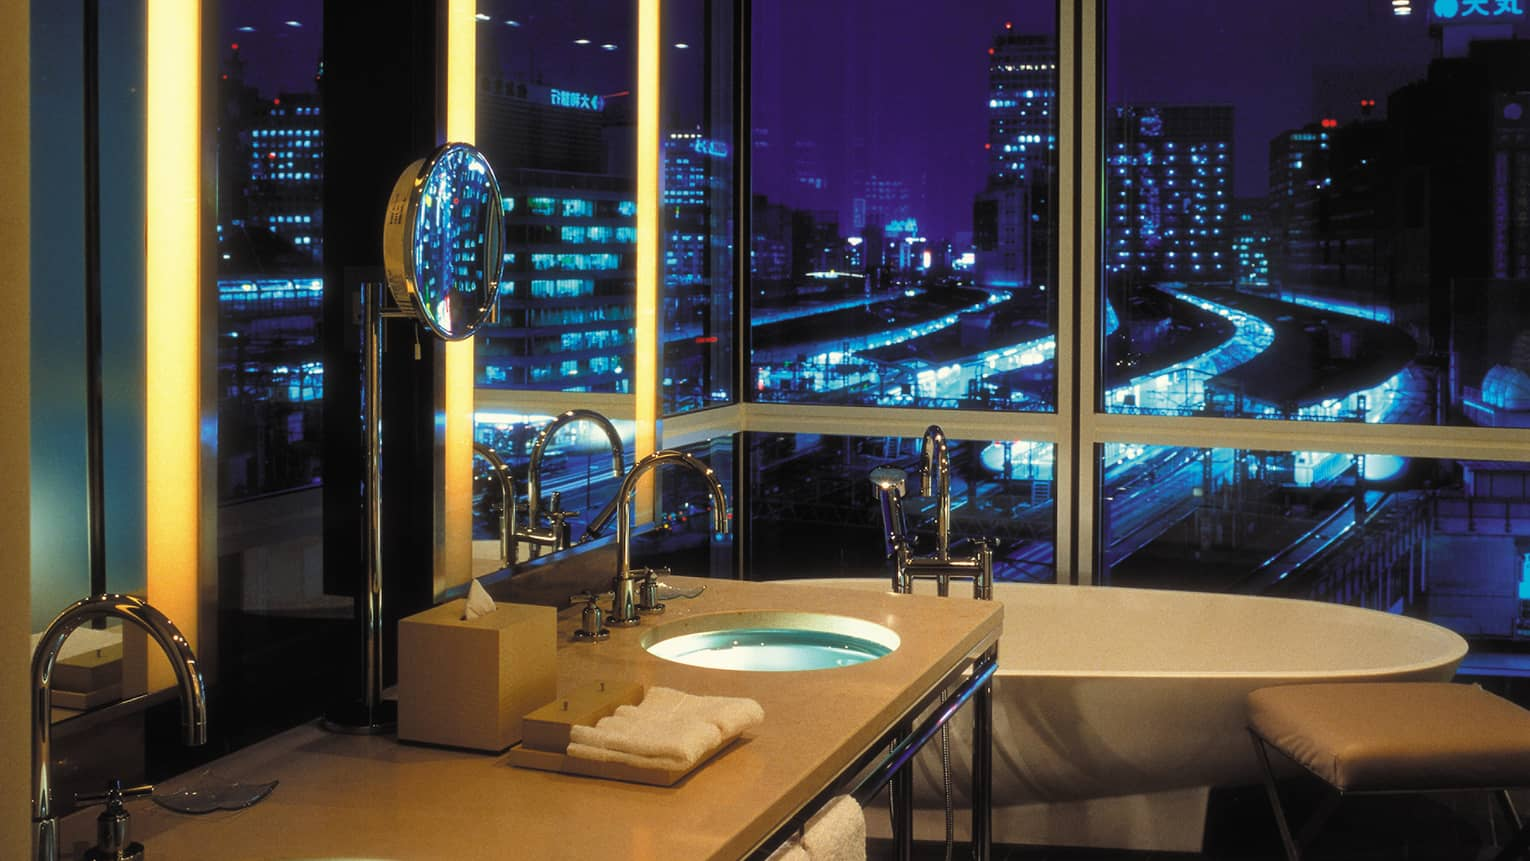 One-bedroom Suite bathroom, sink, freestanding tub by floor-to-ceiling window, Tokyo city lights